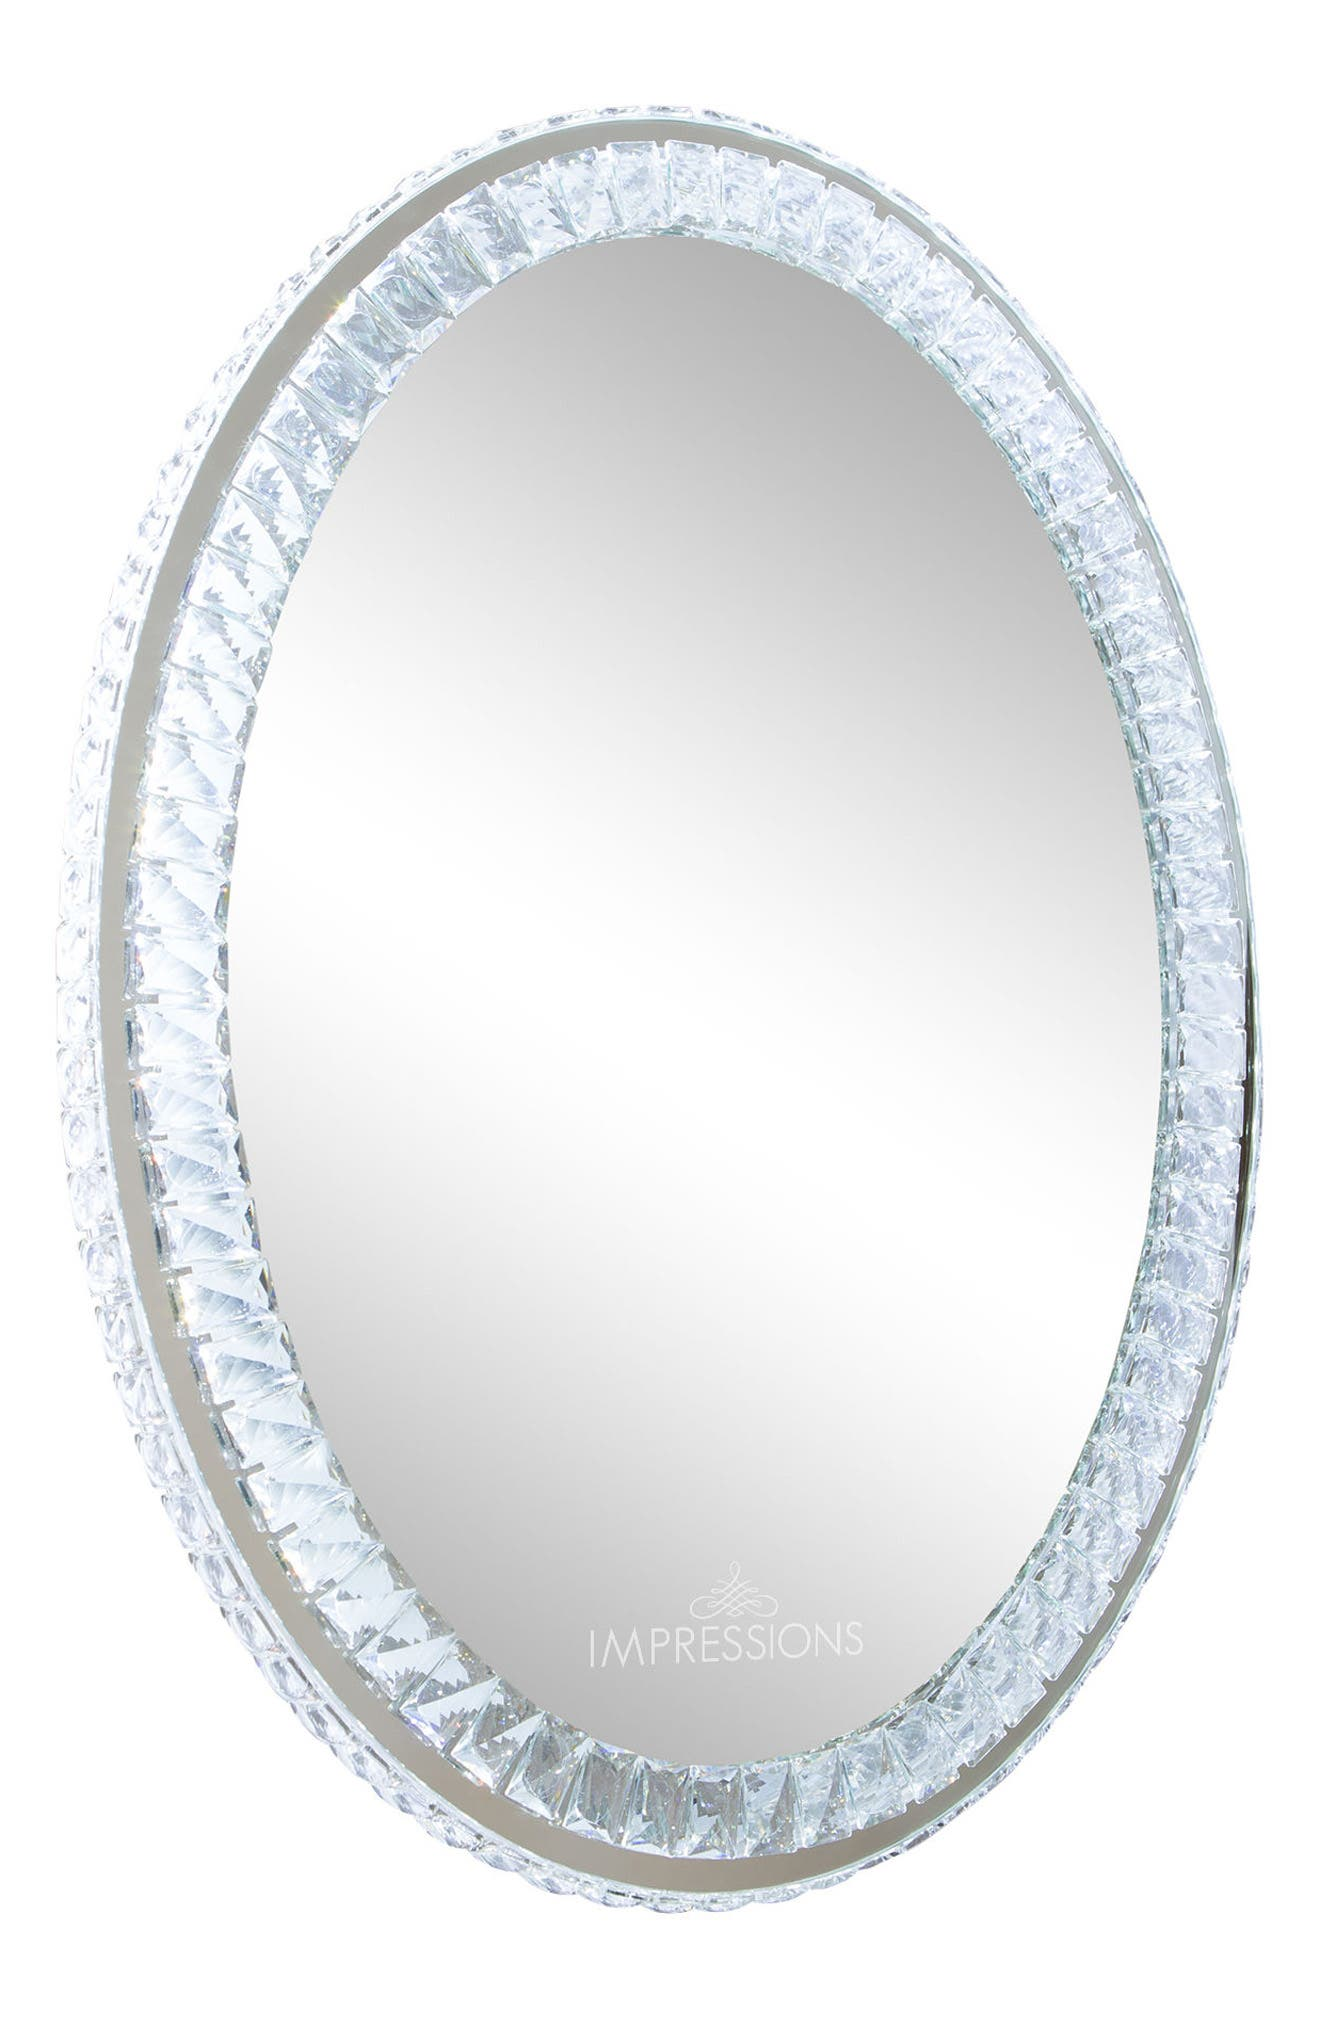 Impressions Vanity Co. Diamond Collection Oval LED Wall Mirror